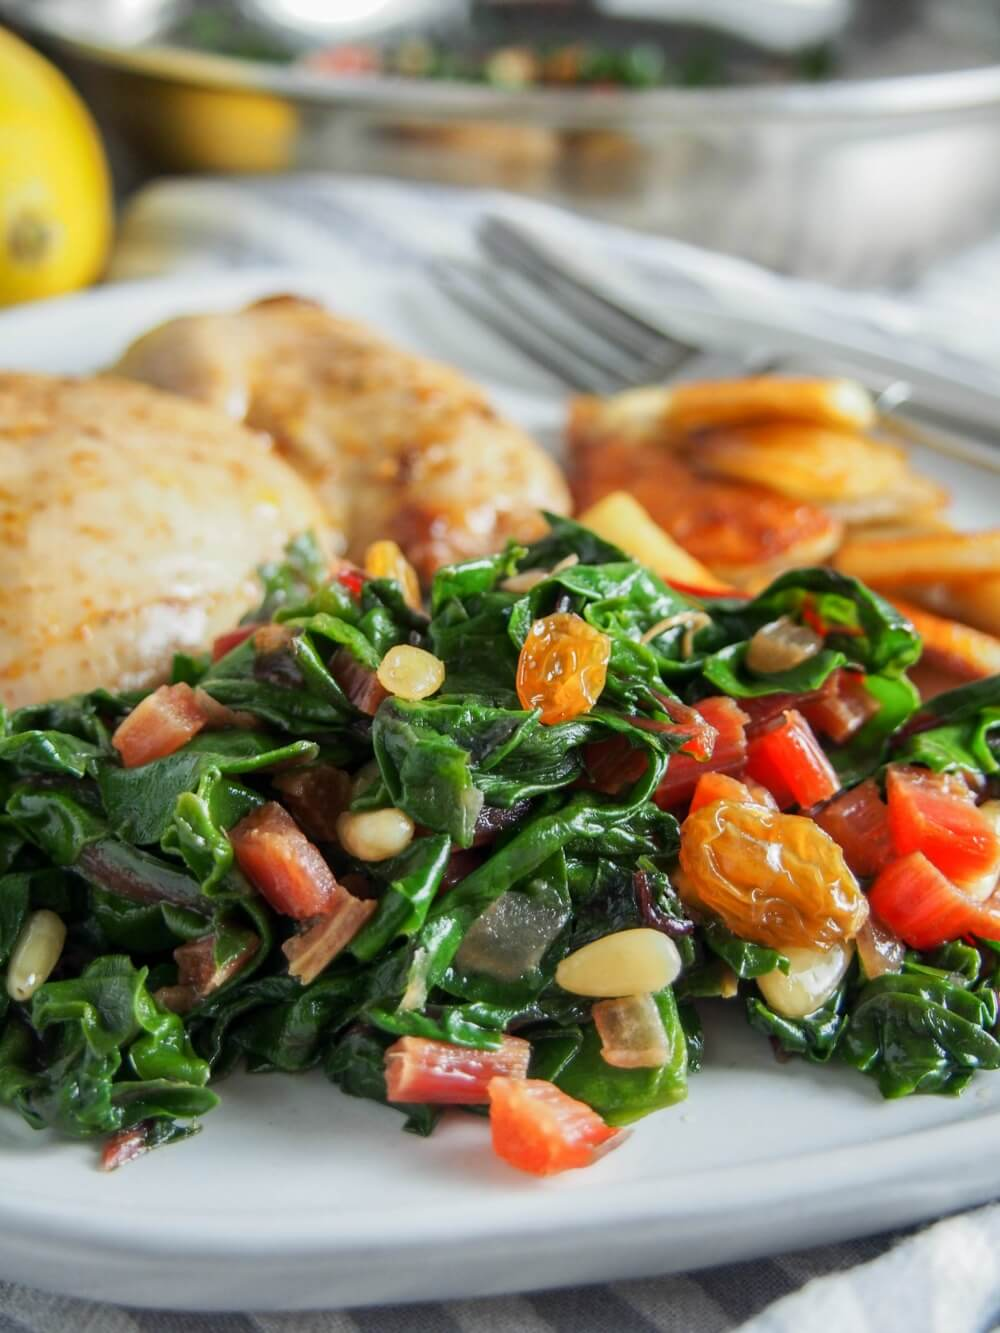 Catalan-style sauteed Swiss chard with raisins and pine nuts